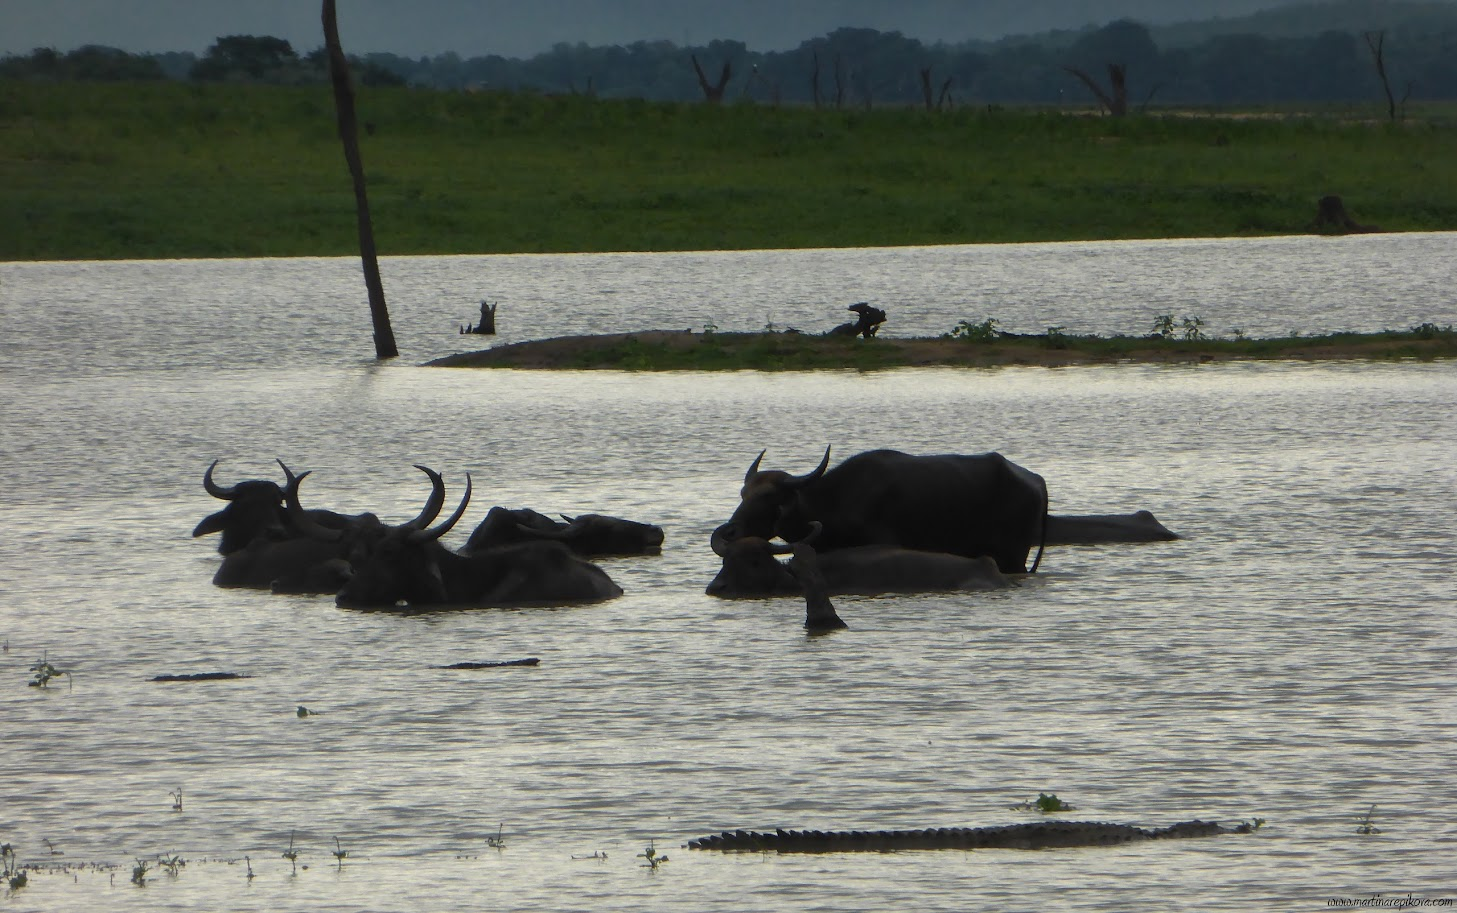 Crocodile and Water buffaloes in Uda Walawe reservoir, Sri Lanka